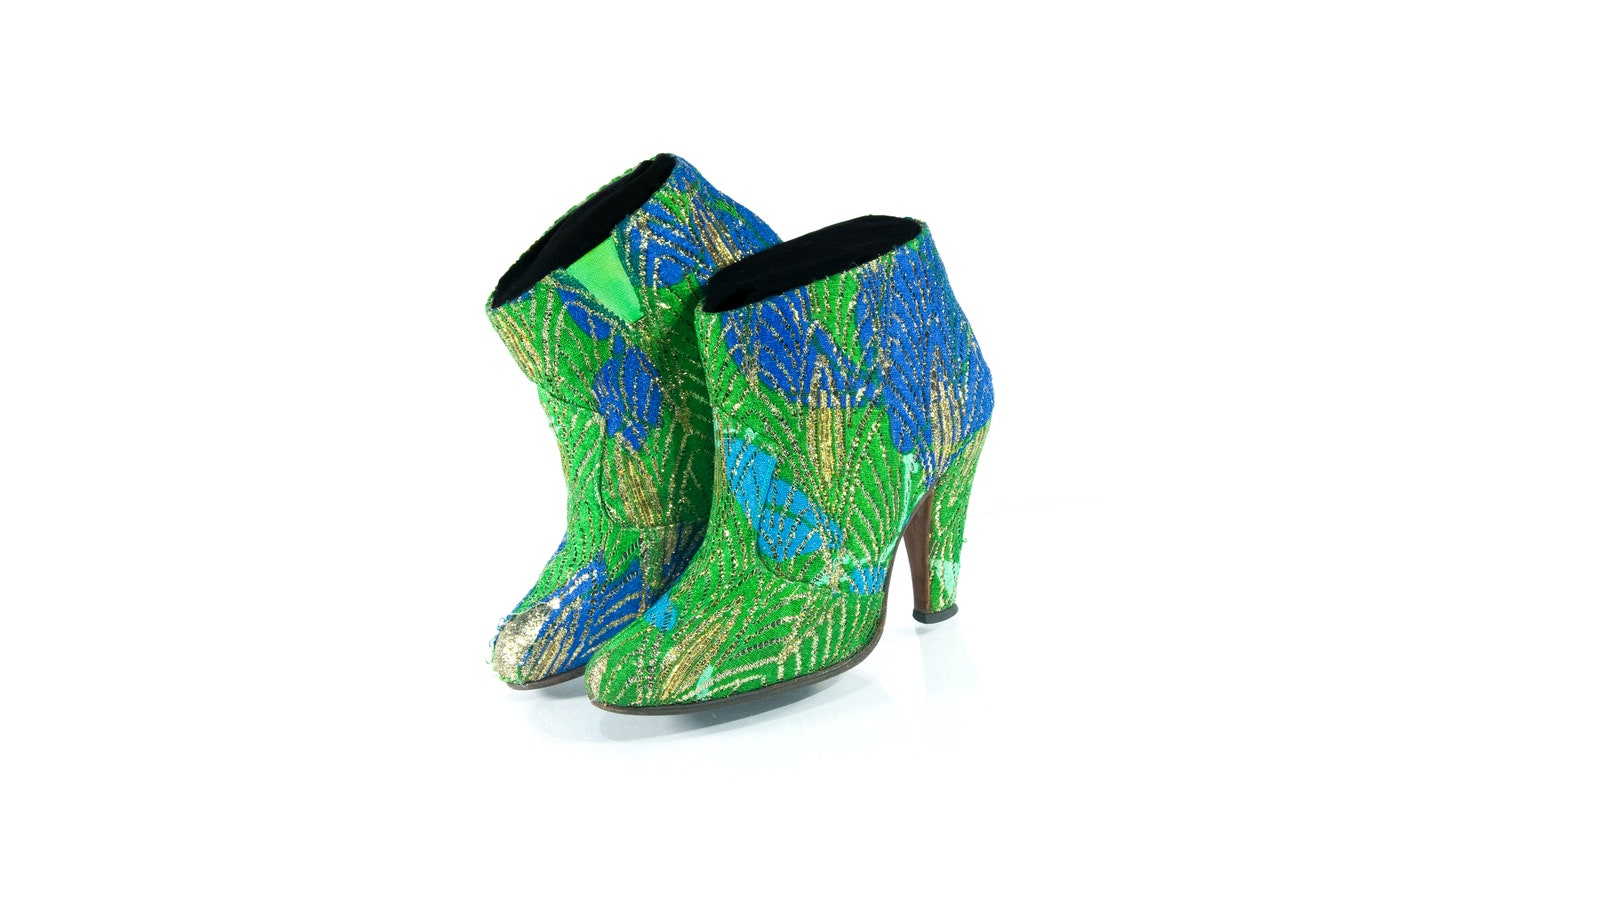 Blue and green-colored boots with heels which Prince wore at the 1985 AMAs